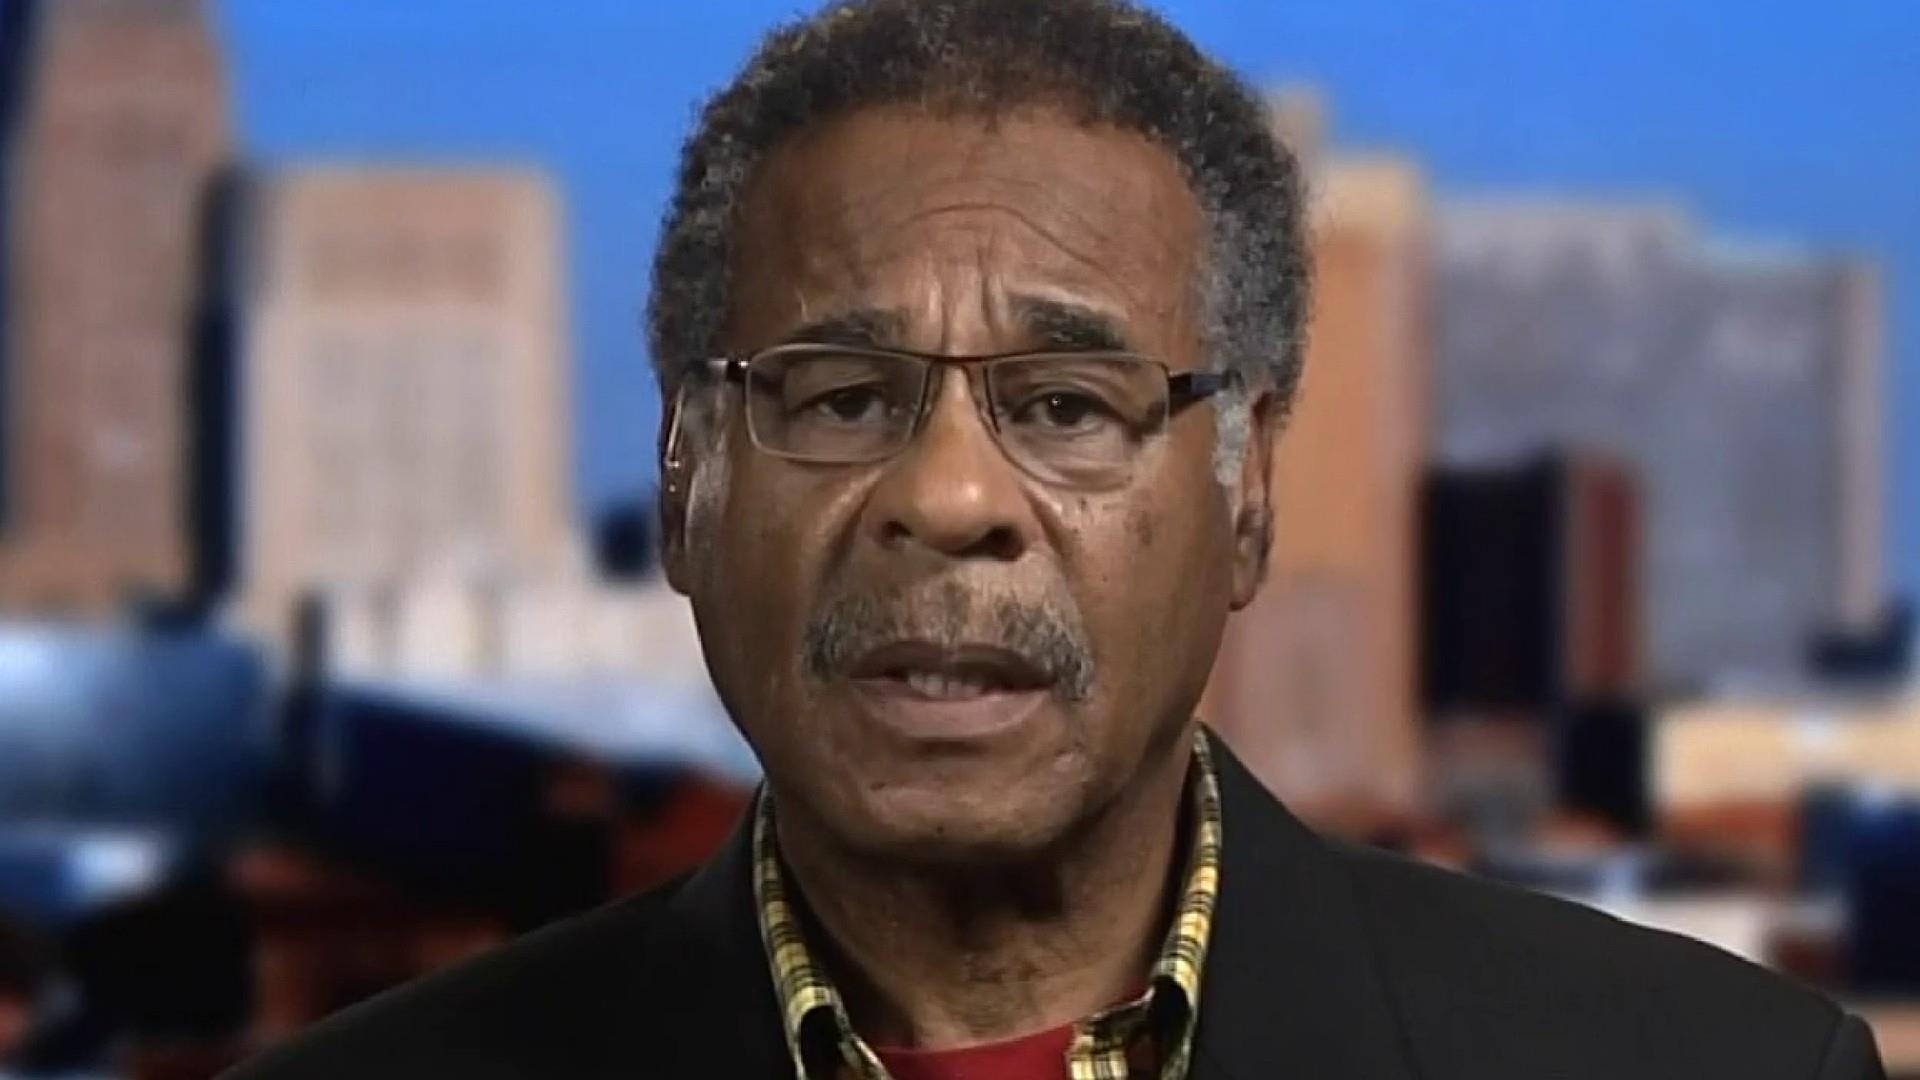 Rep. Cleaver: Trump has turned presidency into 'ATM machine'